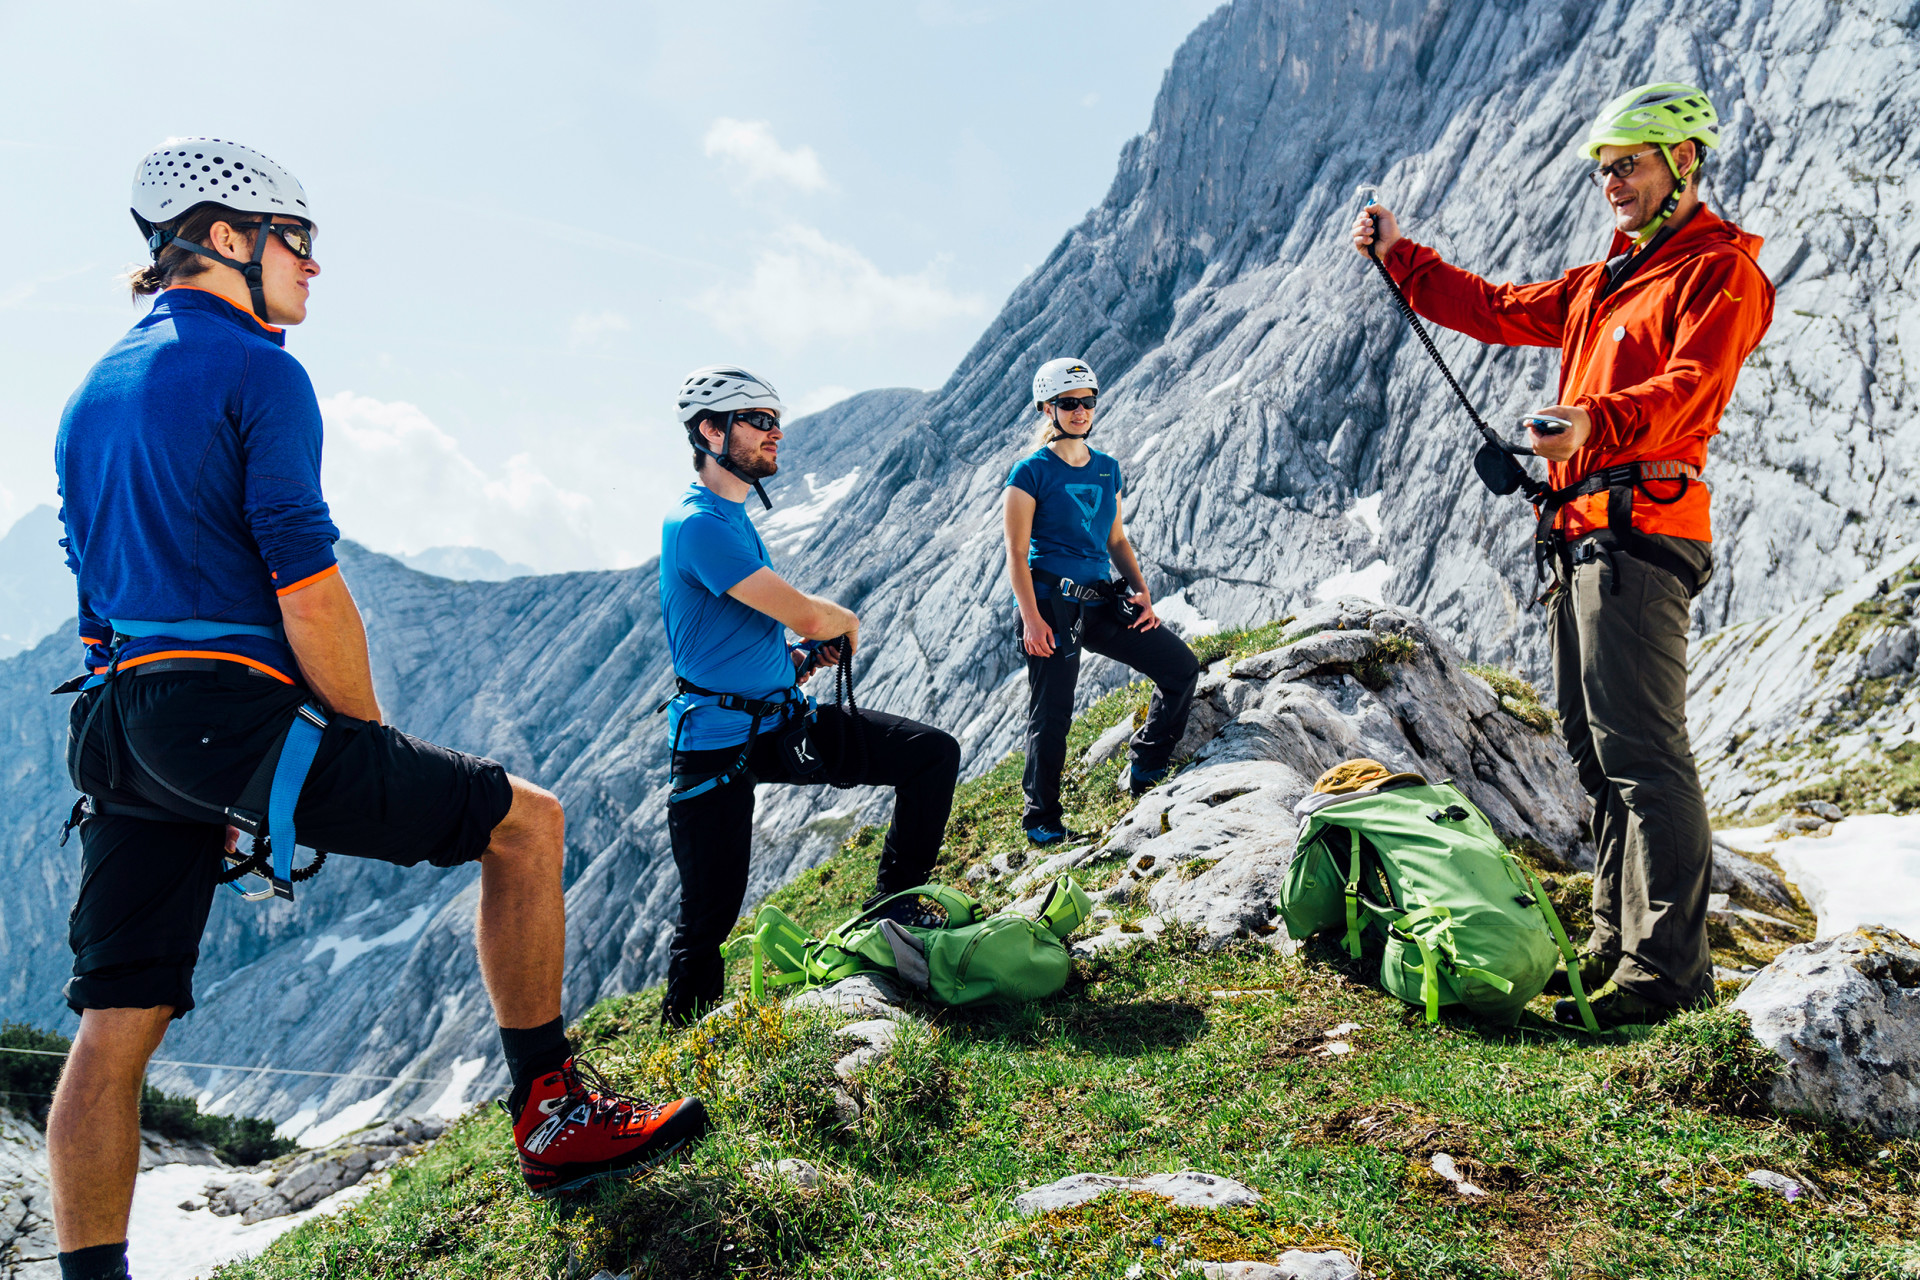 Image photo with the MT. EXPERT GTX EVO,